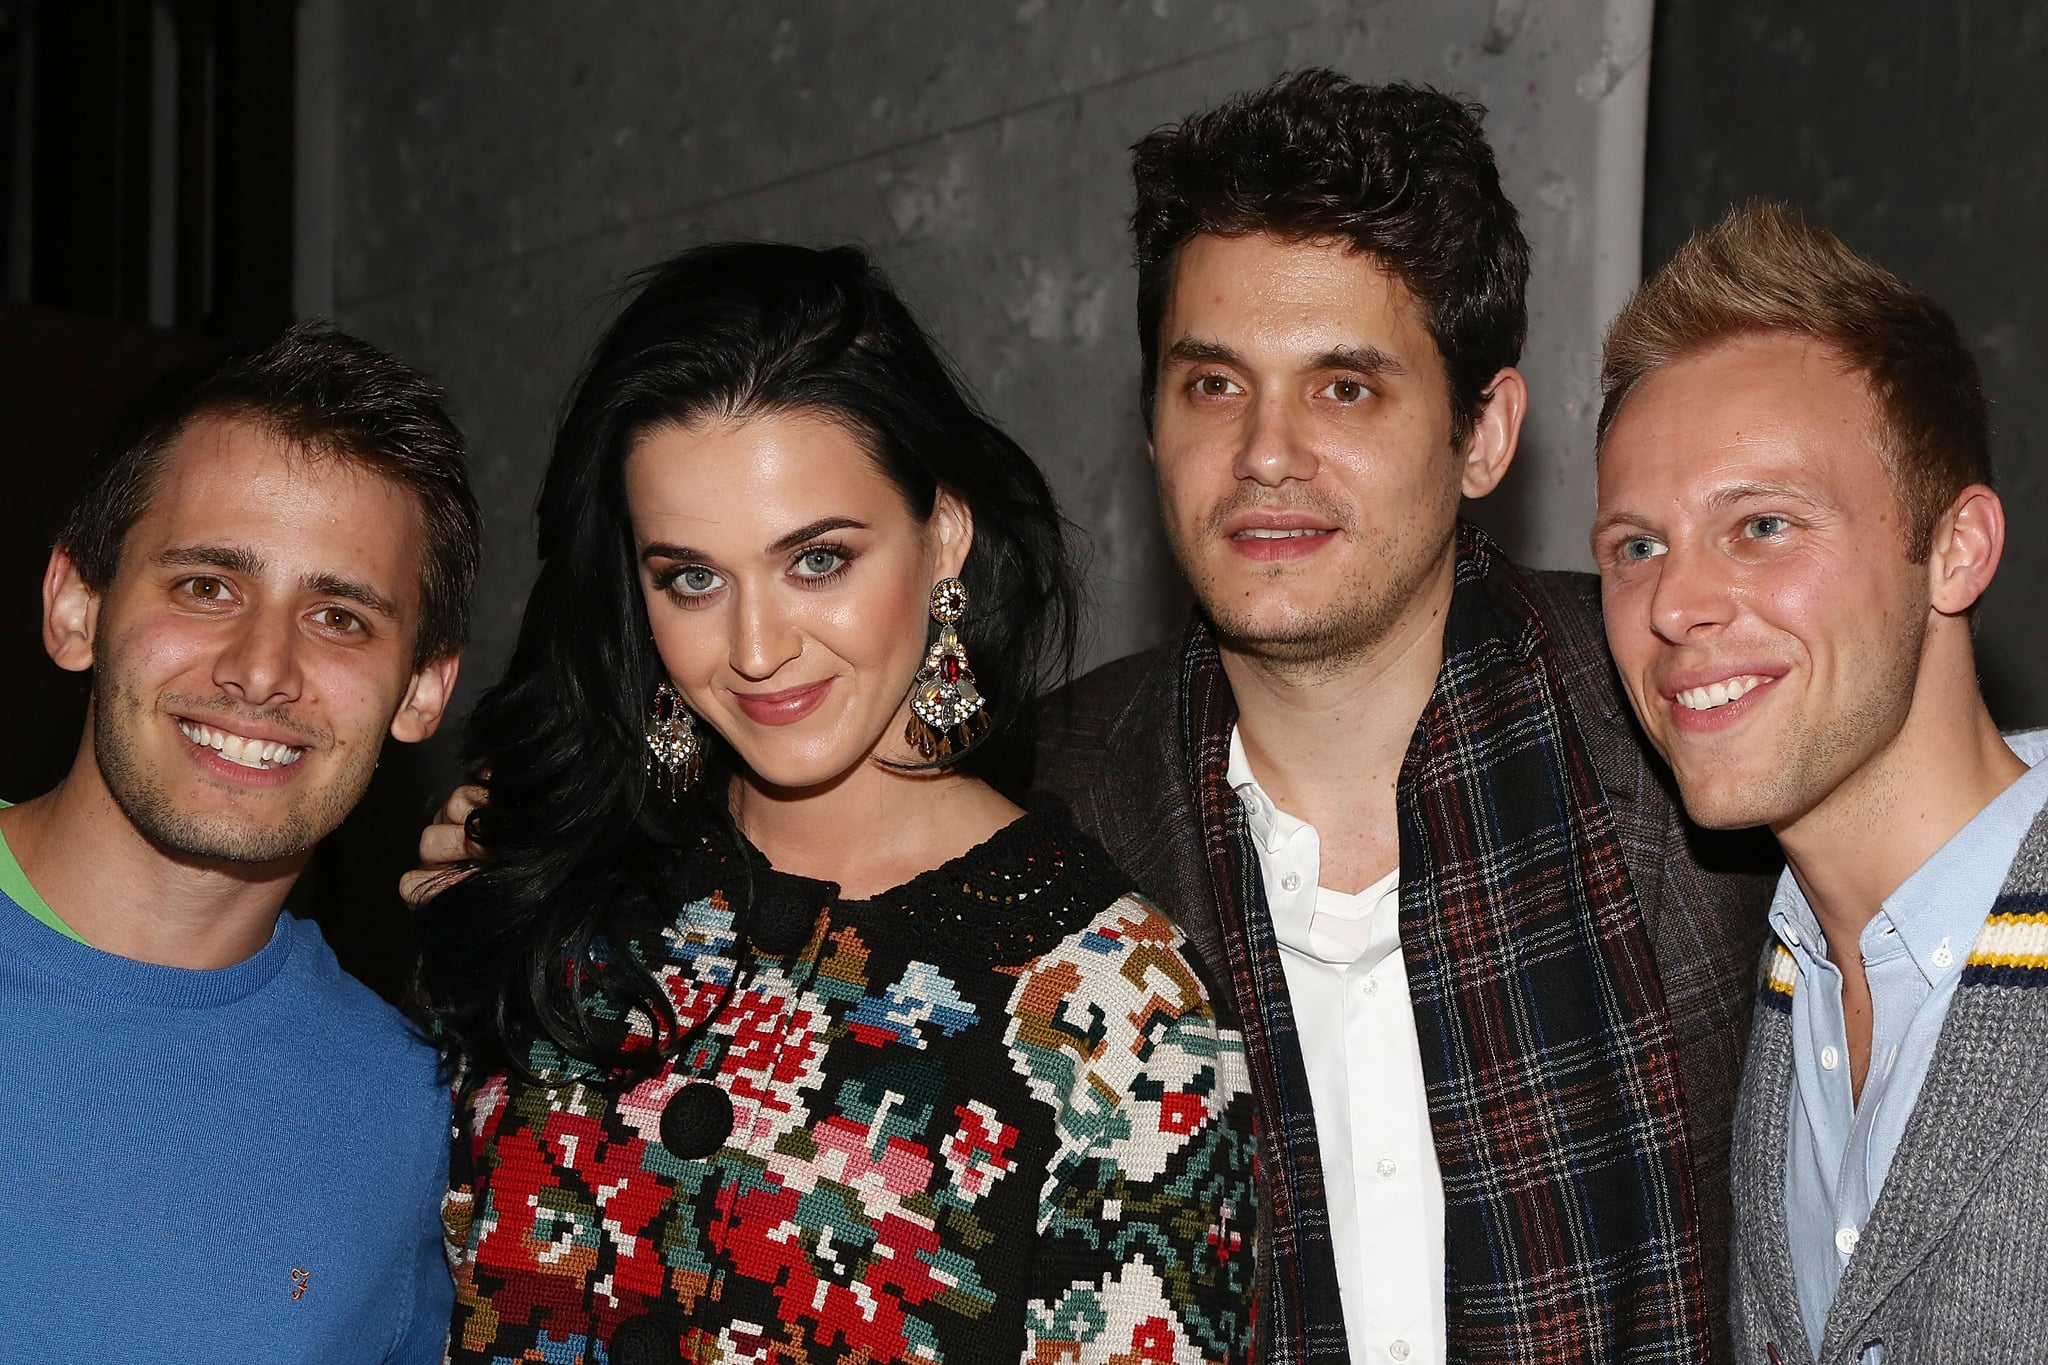 Katy Perry and John Mayer posed with Benj Pasek and Justin Paul.